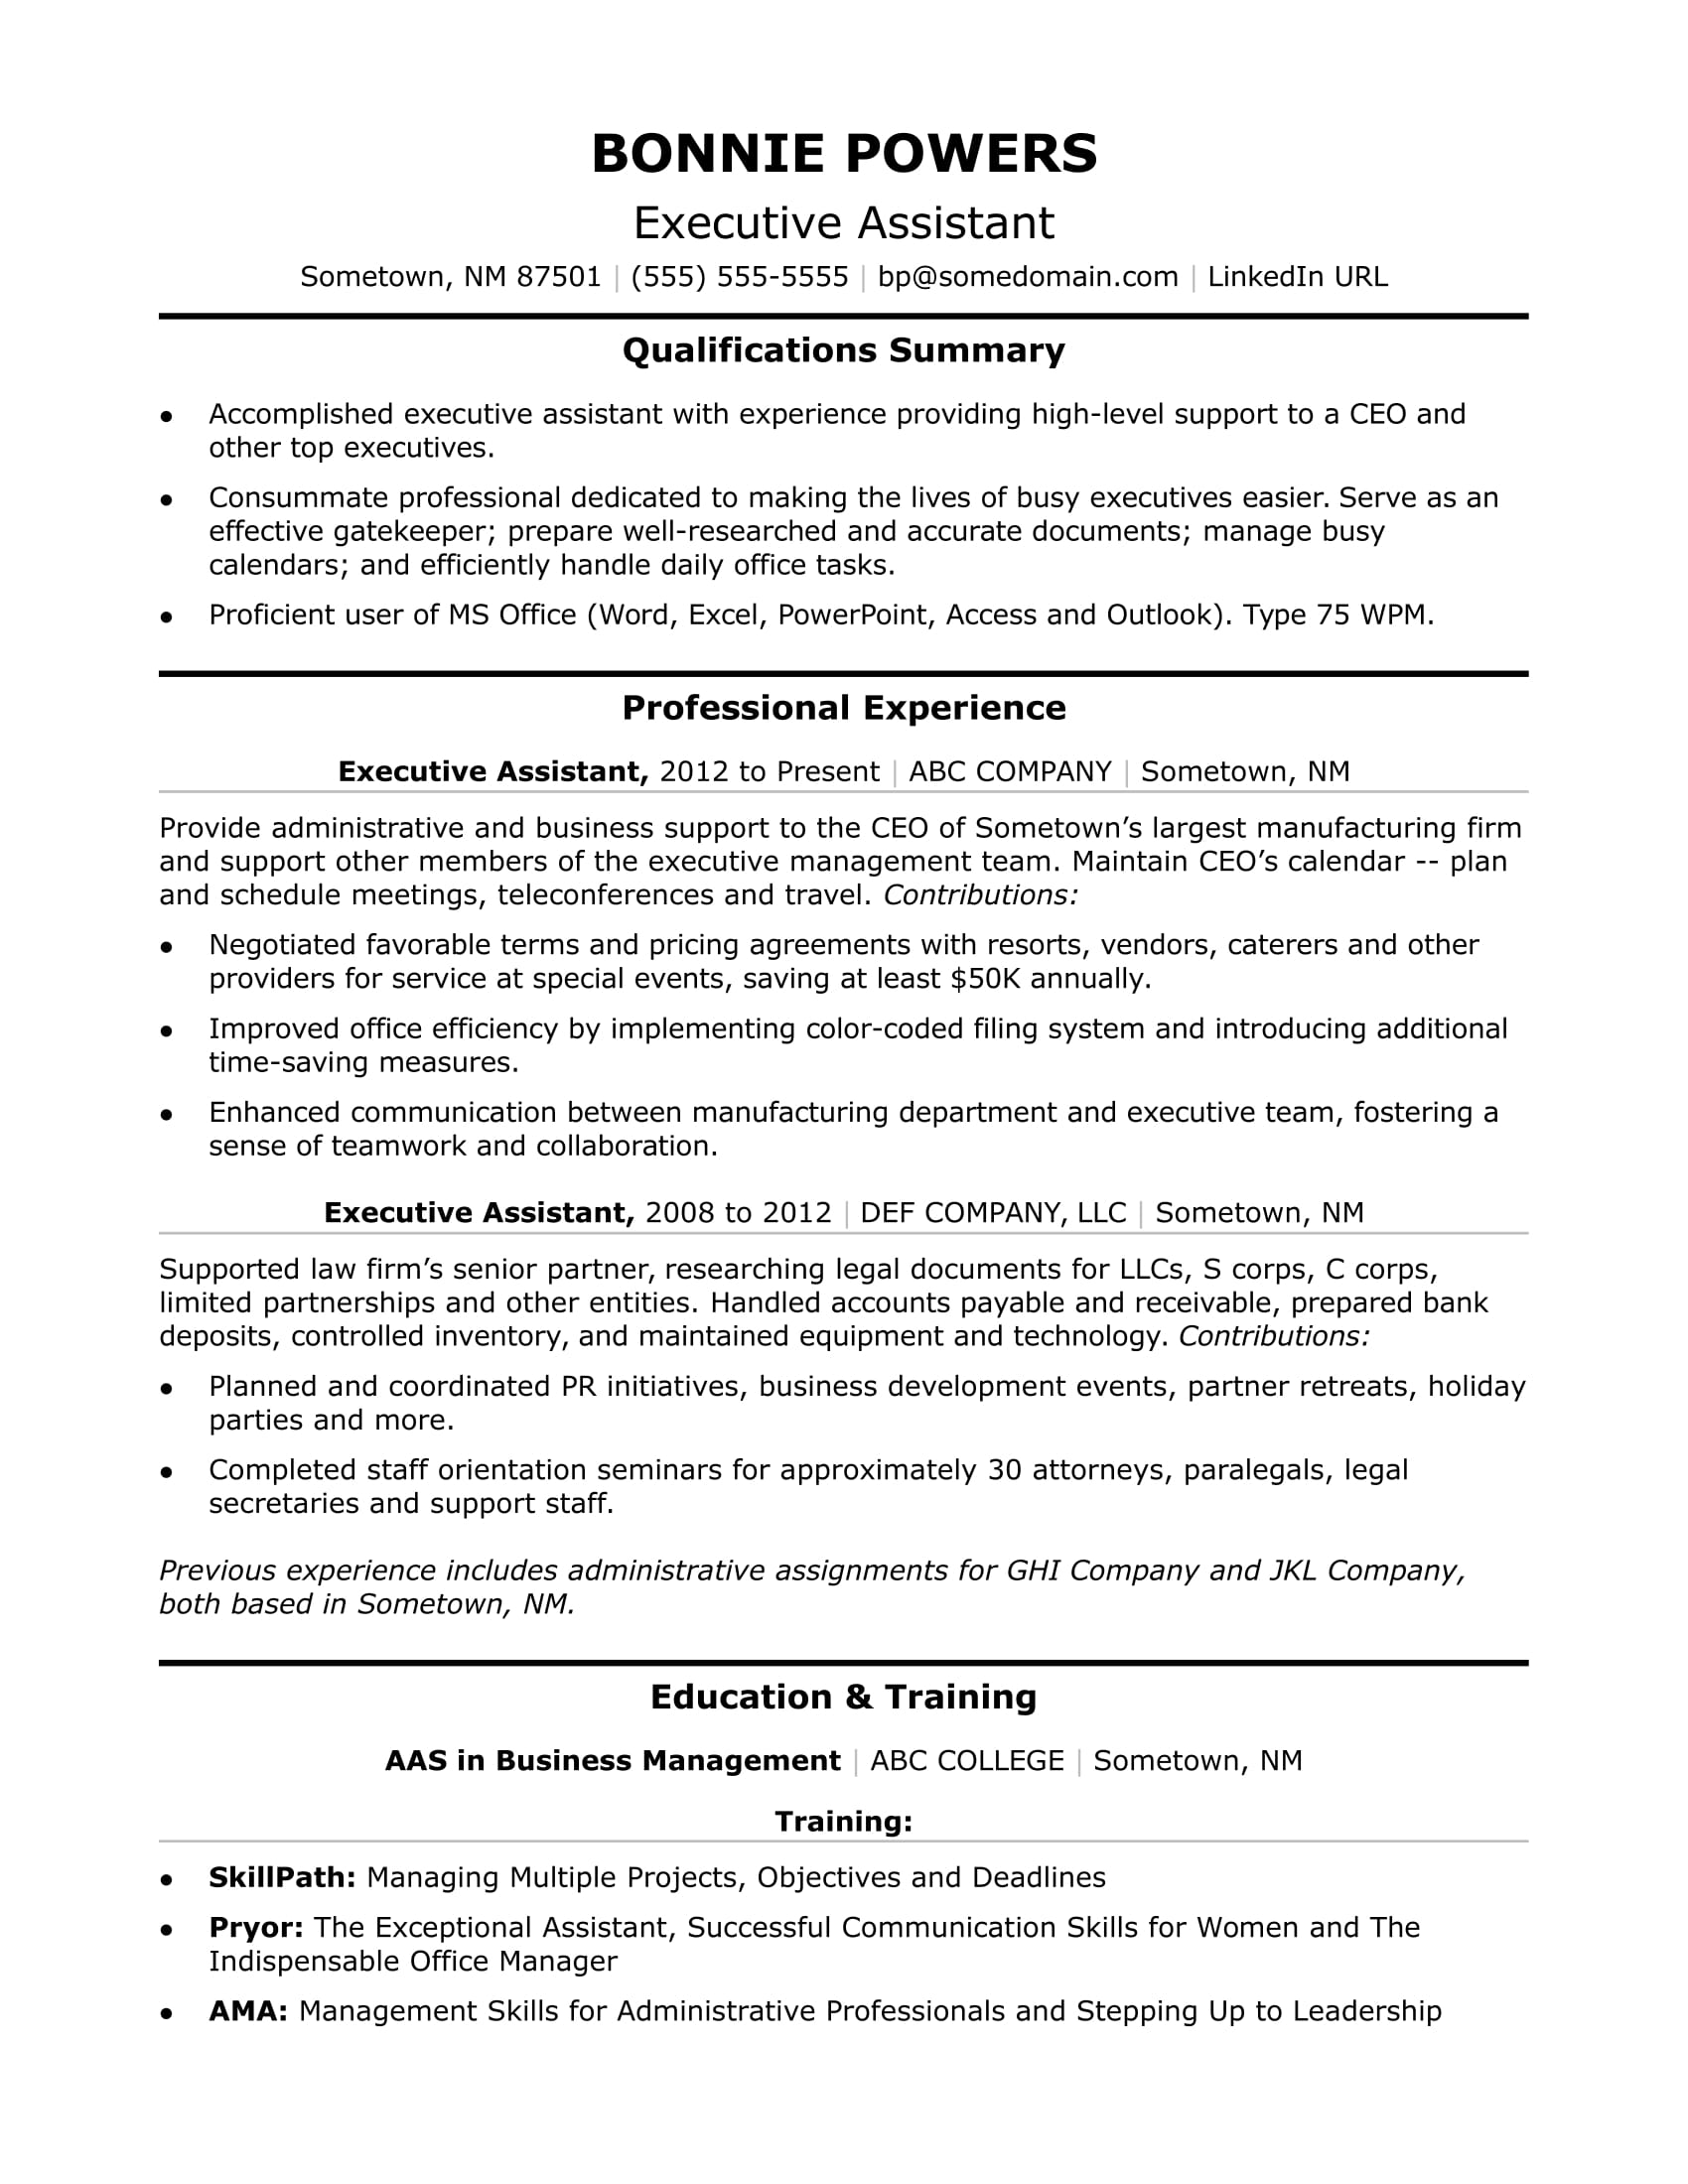 Executive Administrative Assistant Resume Sample Intended For Executive Administrative Assistant Resume Sample